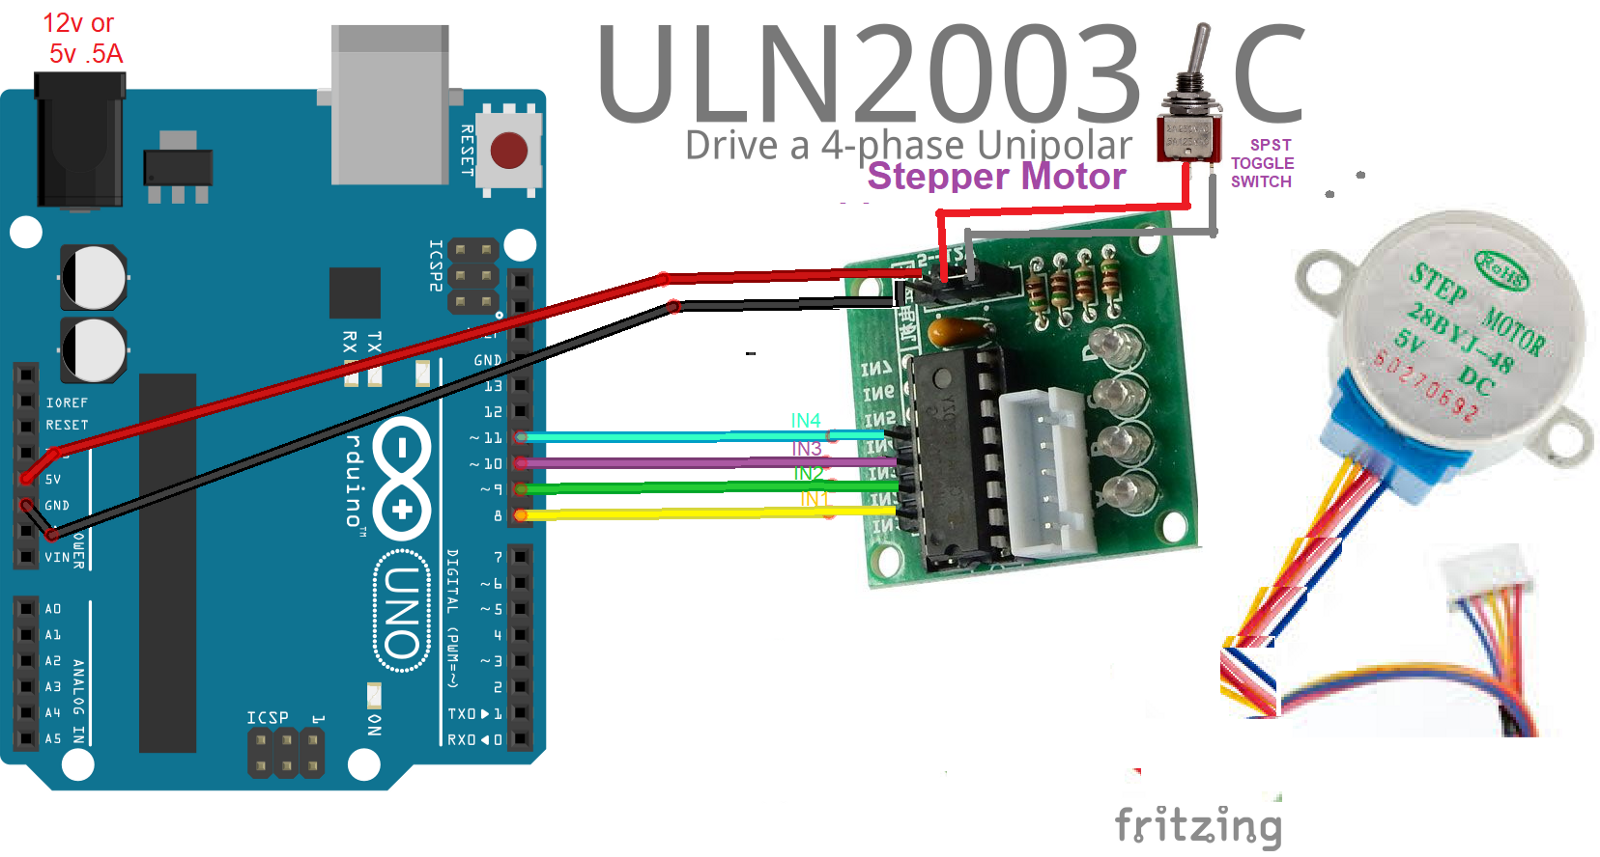 Up there I'm using this Board: ULN2003 28BYJ-48 Stepper Motor & Arduino Uno IDE 1.8.5. The ideal result is?